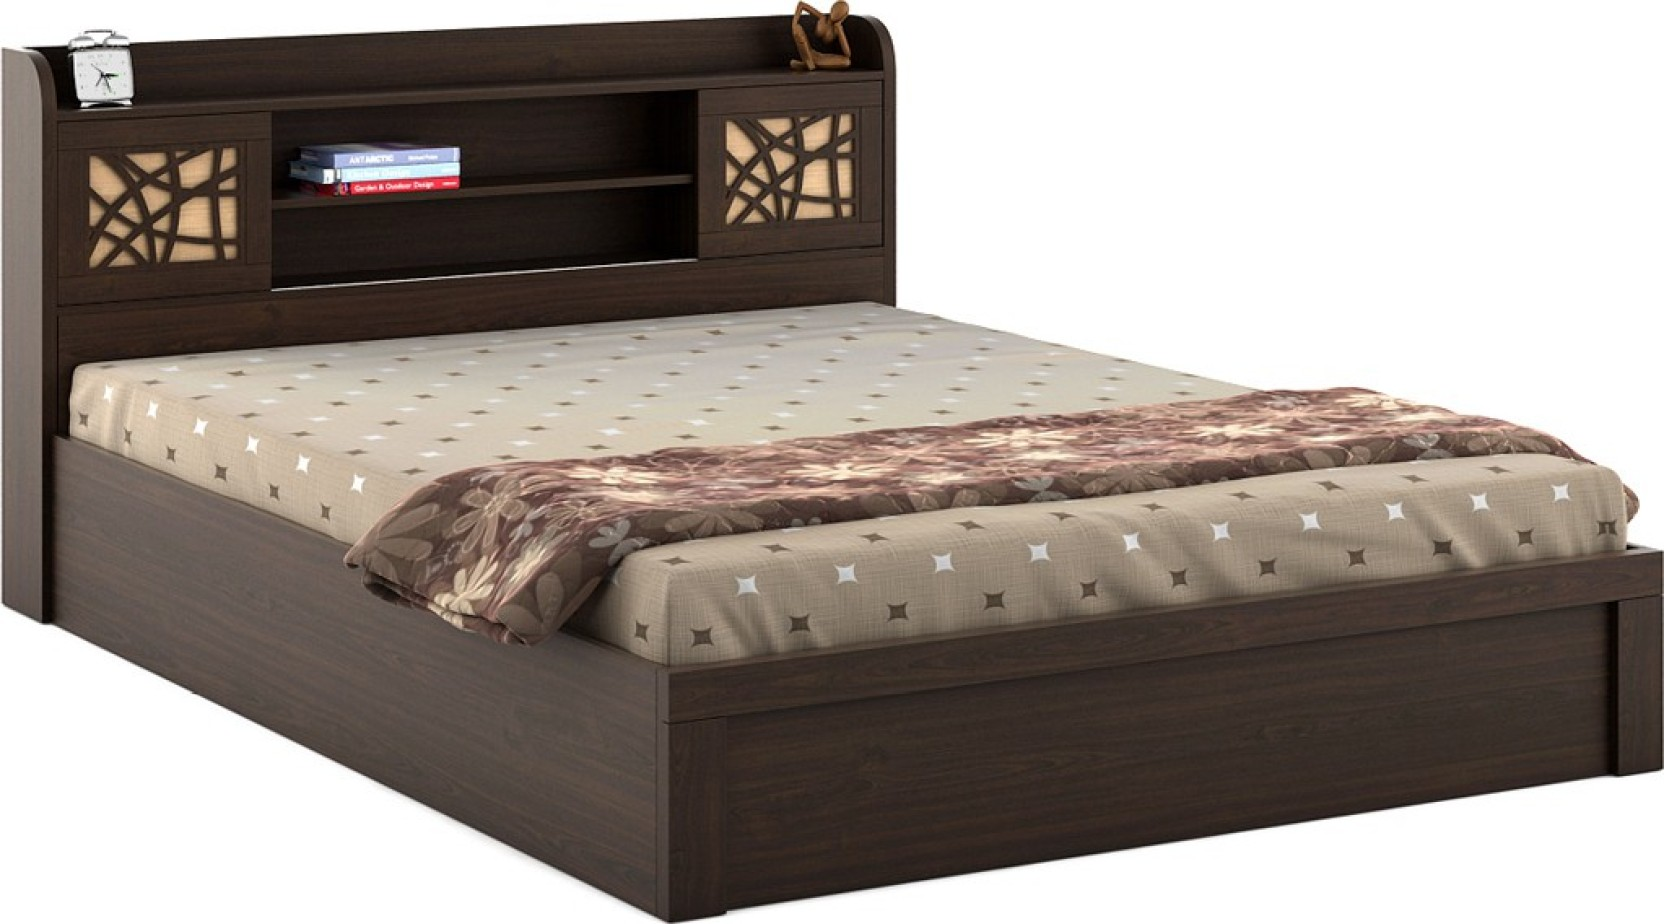 Spacewood Mayflower Engineered Wood Queen Bed With Storage